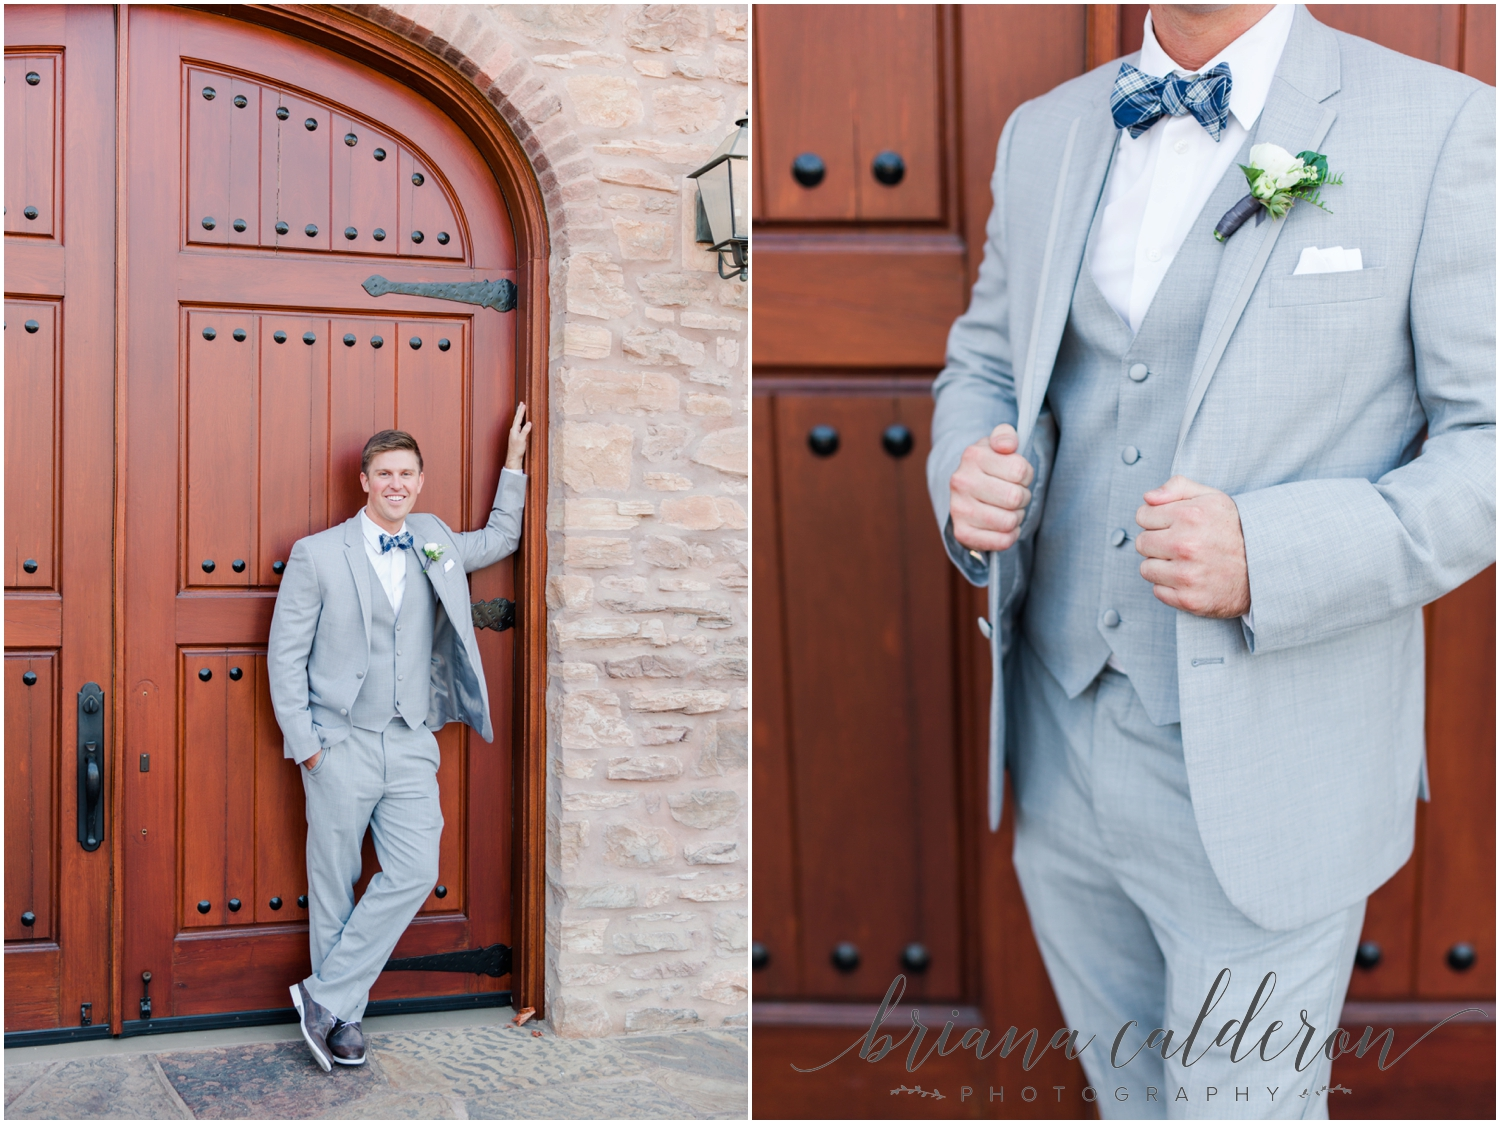 Regale Winery Wedding photos by Briana Calderon Photography_0628.jpg